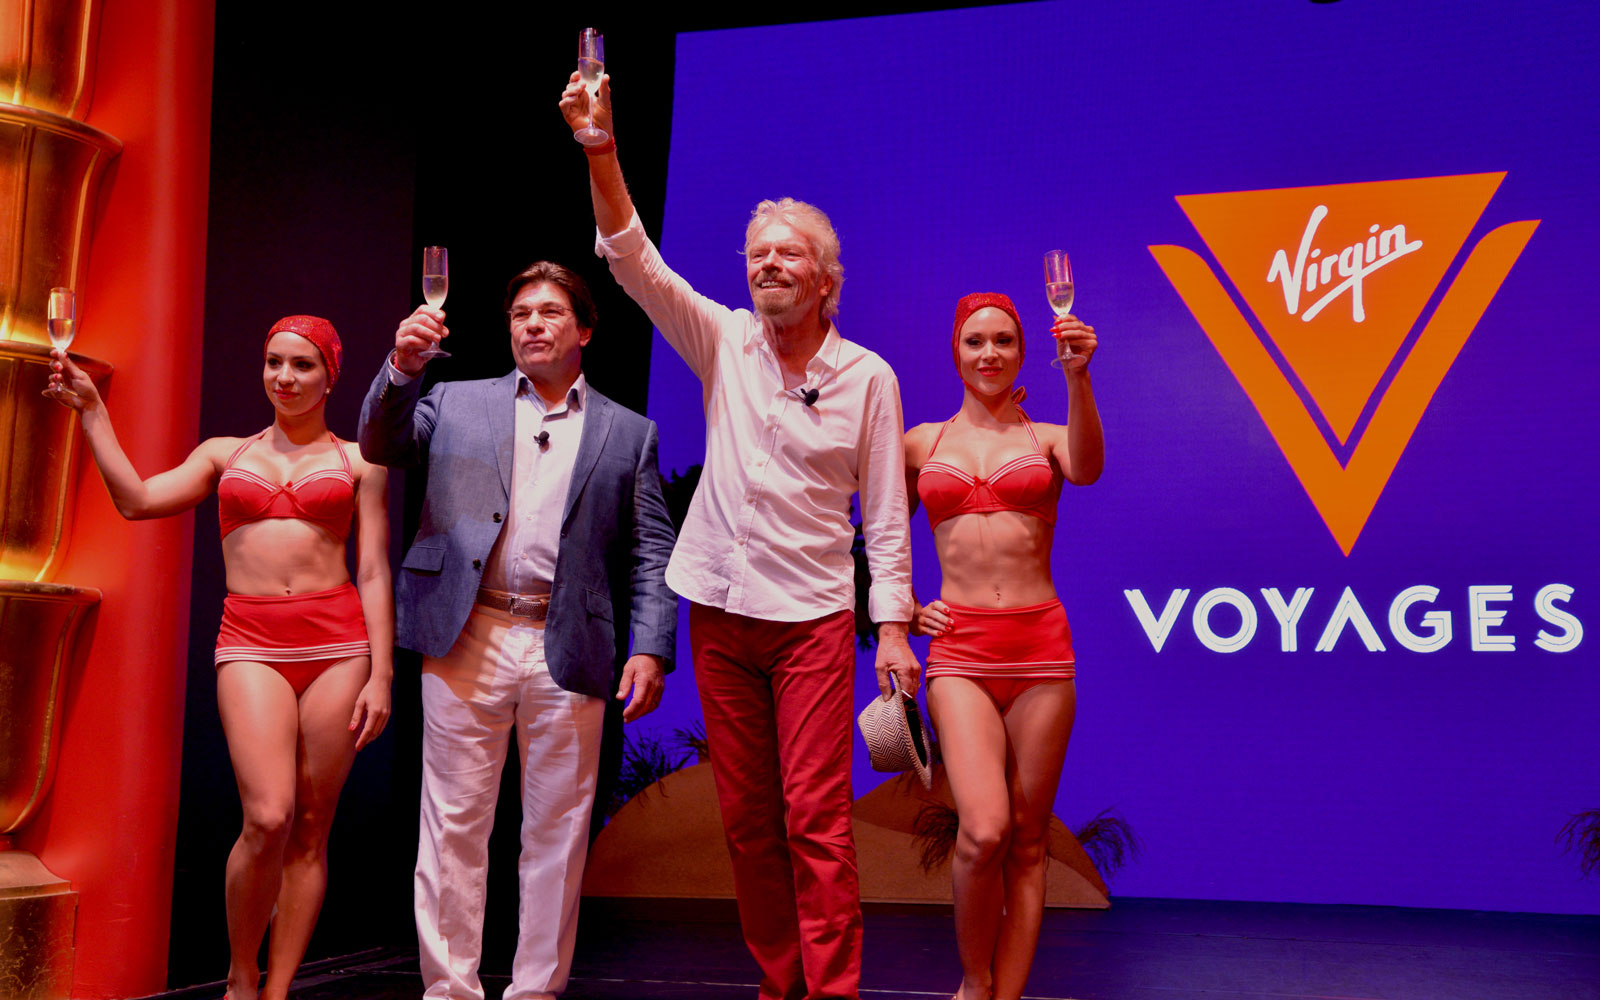 Richard Branson Launches Virgin Voyages Cruise Line